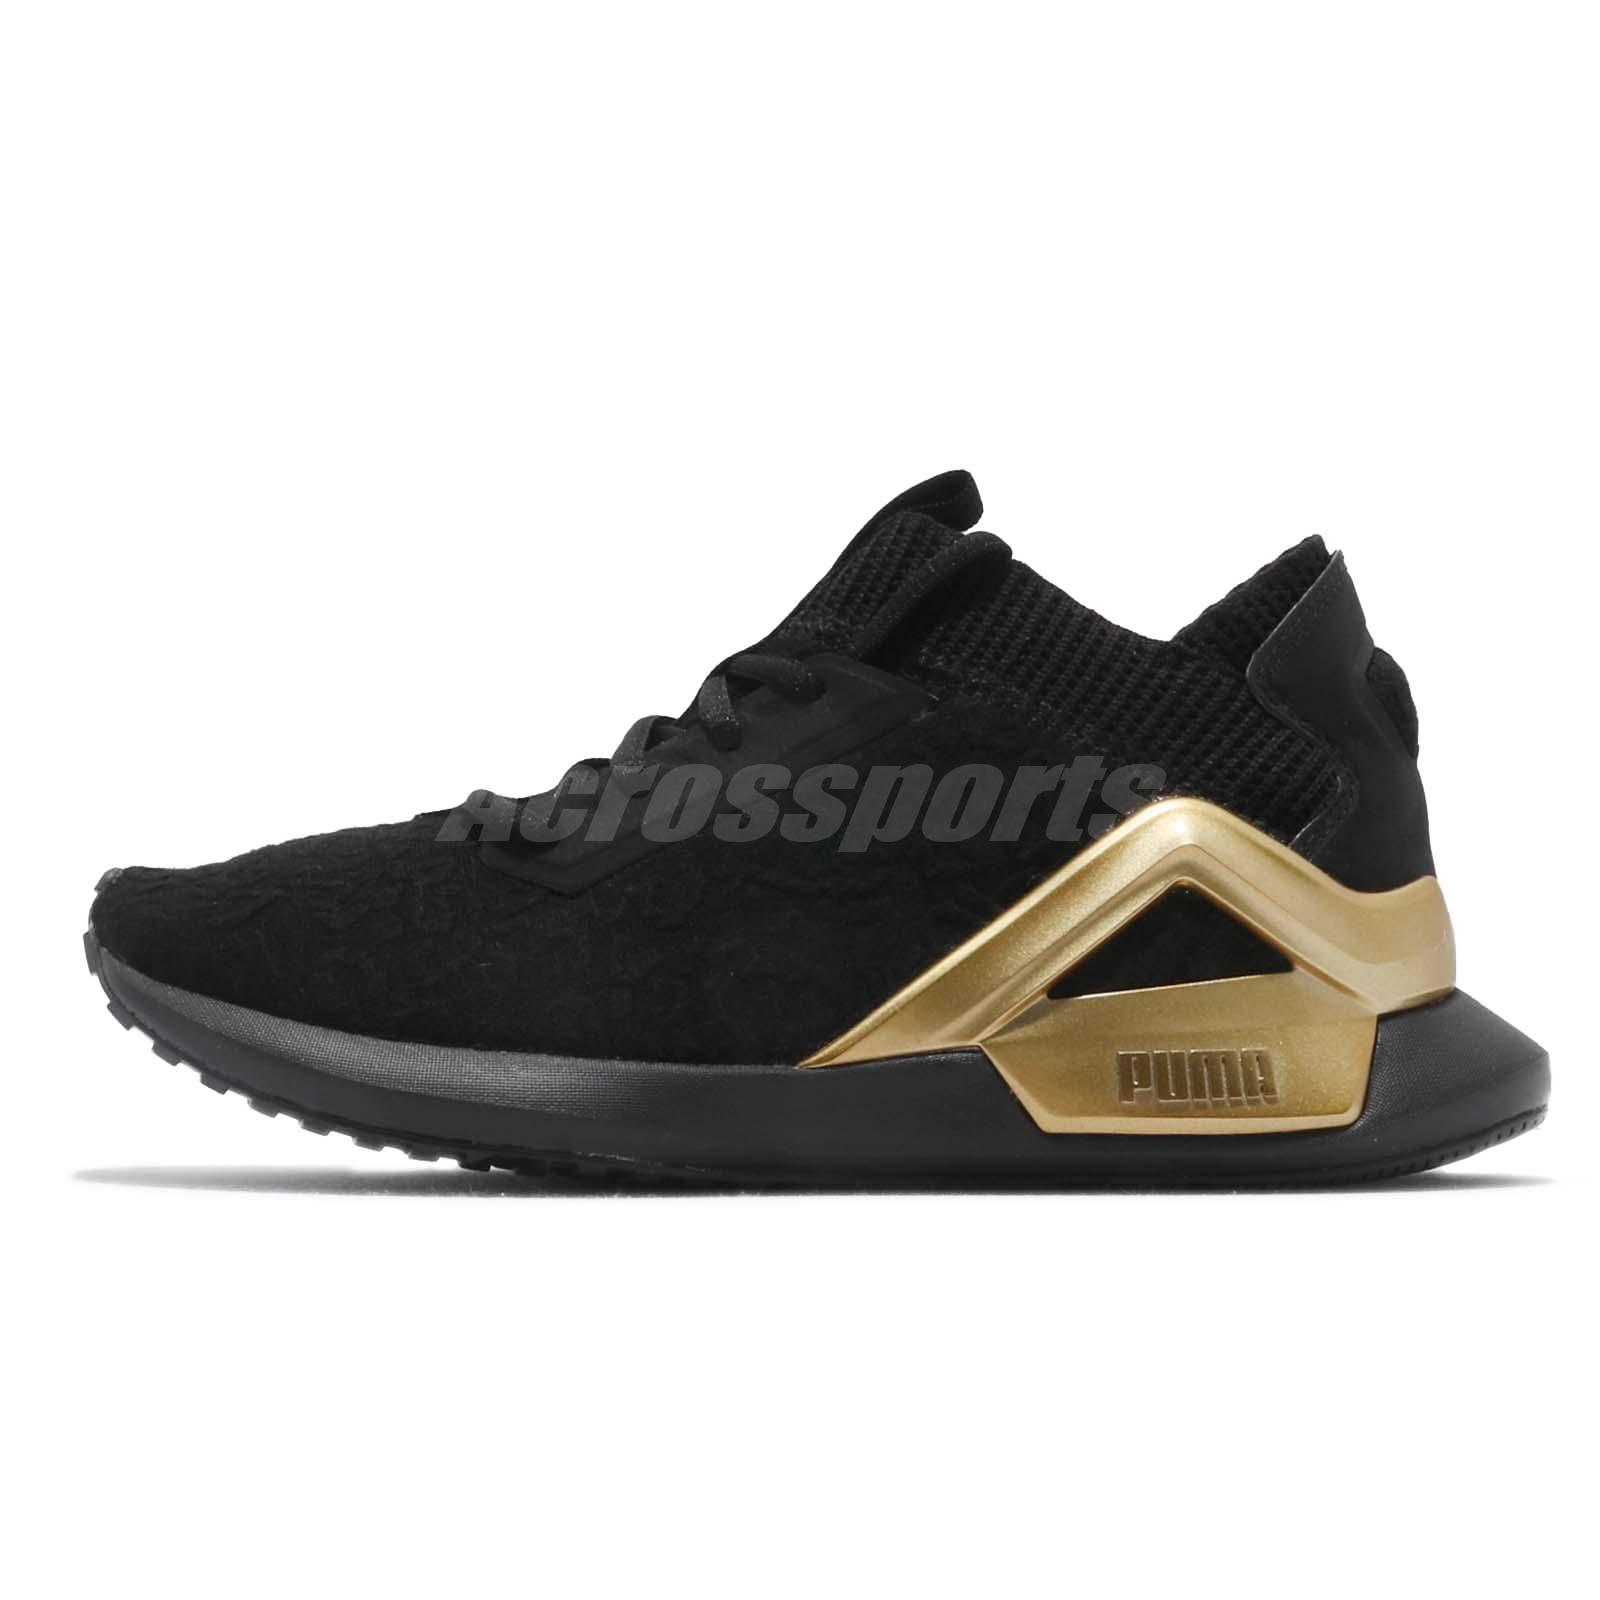 aee4f88cb2f4 Puma Rogue Metallic Wns Black Gold Women Cross Training Shoes Sneakers  192460-01